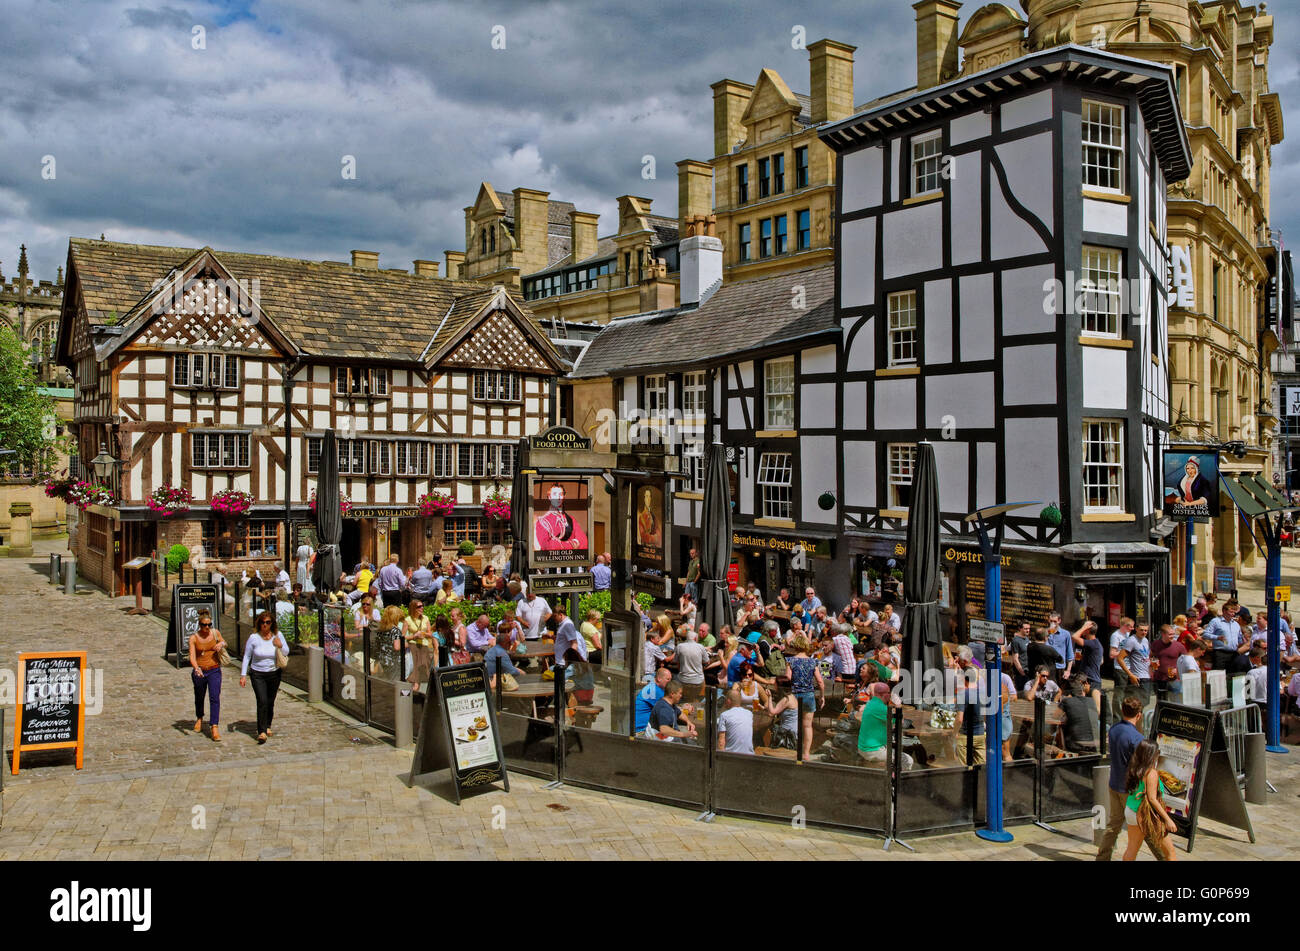 The Old Wellington Inn and Sinclairs Oyster Bar, popularly known as 'The Shambles' in Exchange Square Manchester, - Stock Image